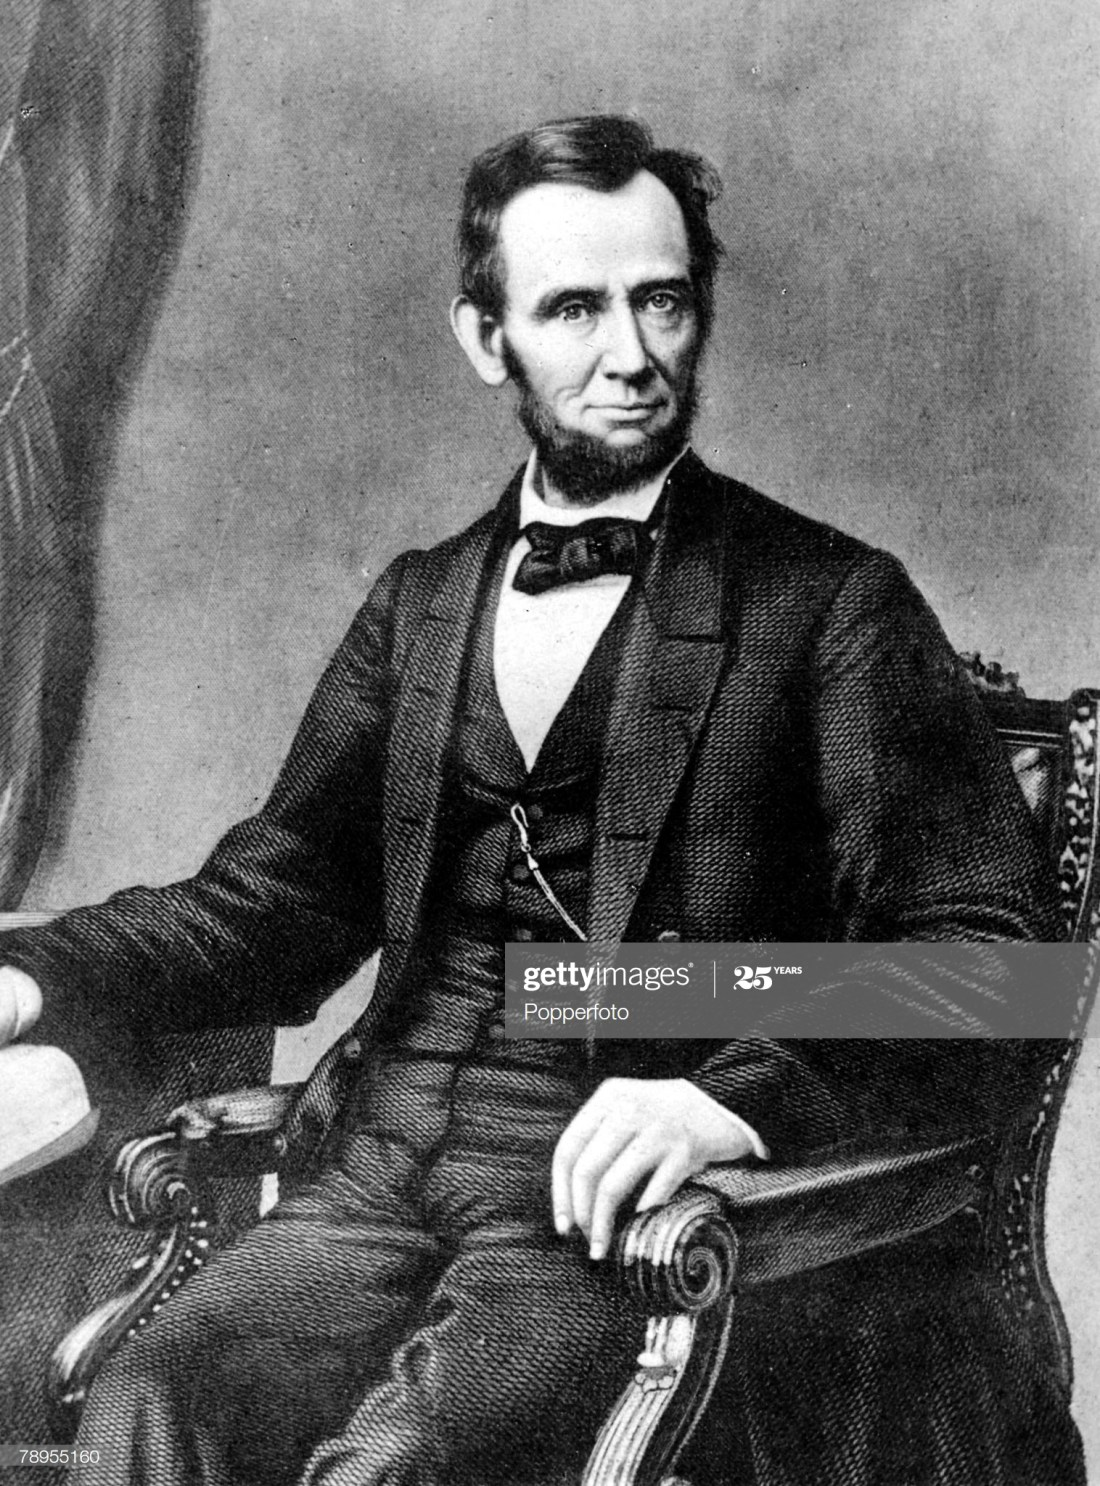 Formal portrait of Abraham Lincoln 1809 - 1865, 16th President of the United States of America, famous for saving the Union in the American Civil and the emancipation of slaves. He was assassinated by John Wilkes Booth in 1865. : News Photo